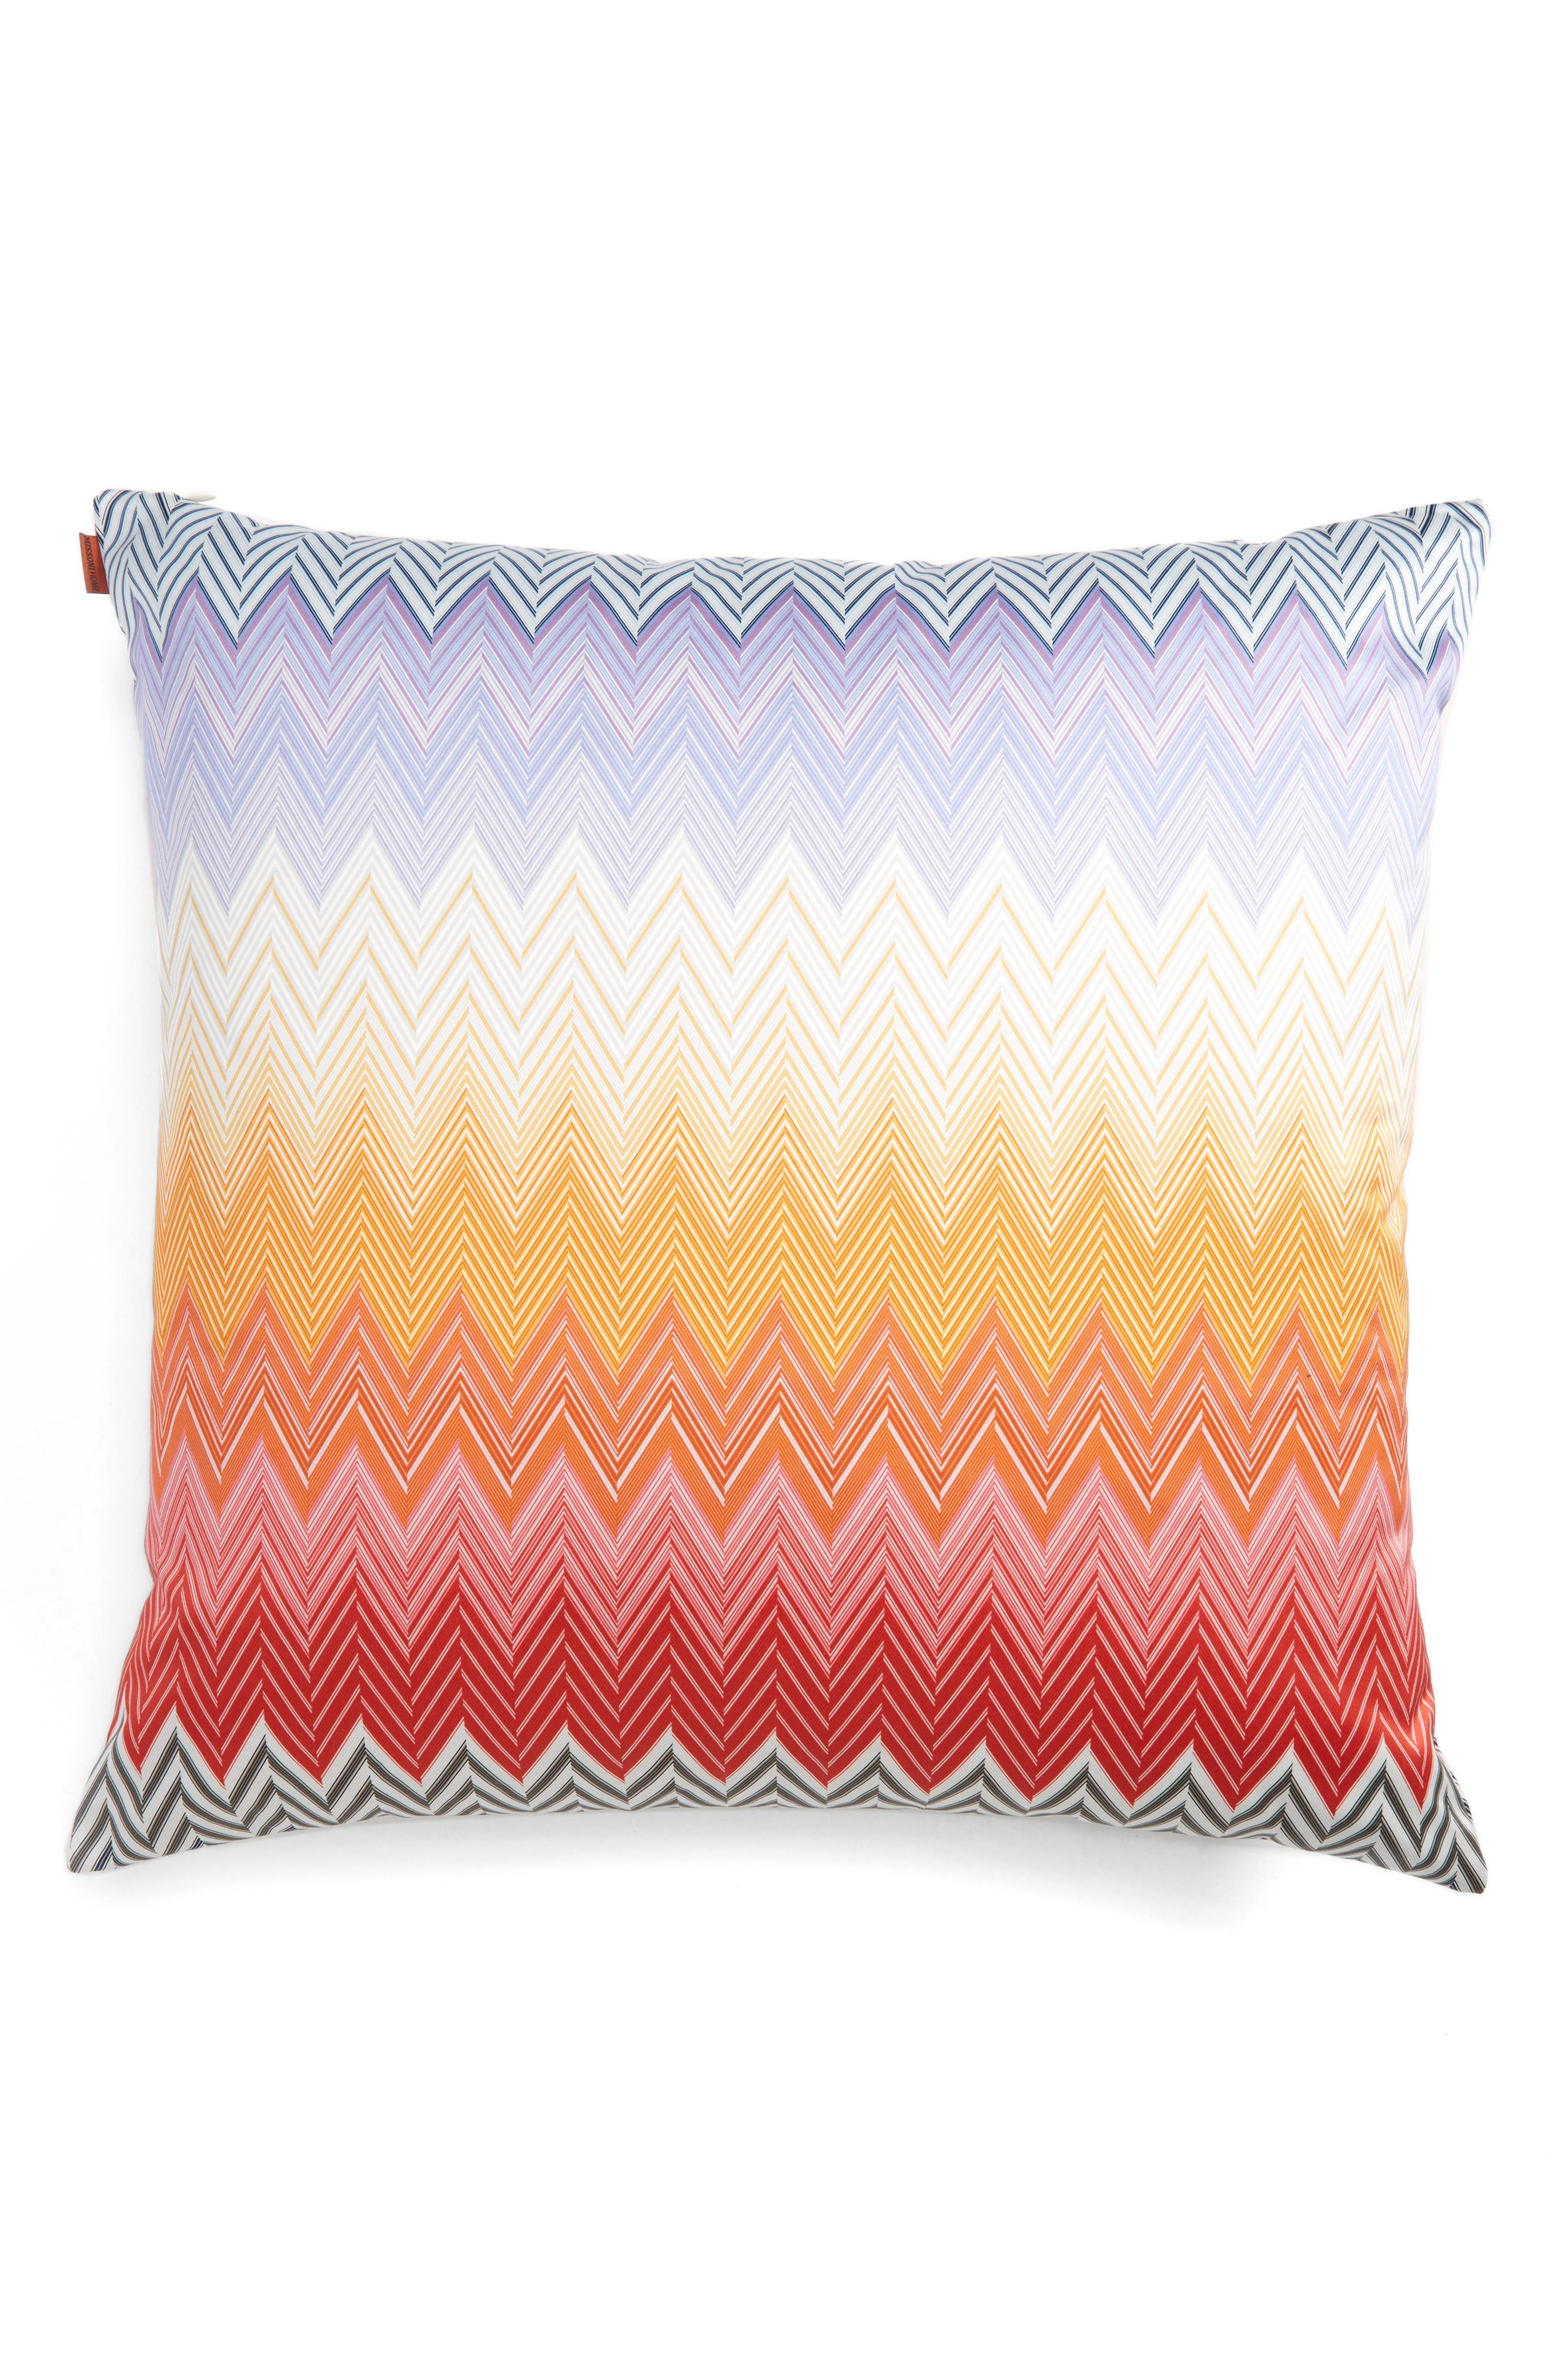 Sabaudia Accent Pillow,                             Main thumbnail 1, color,                             600